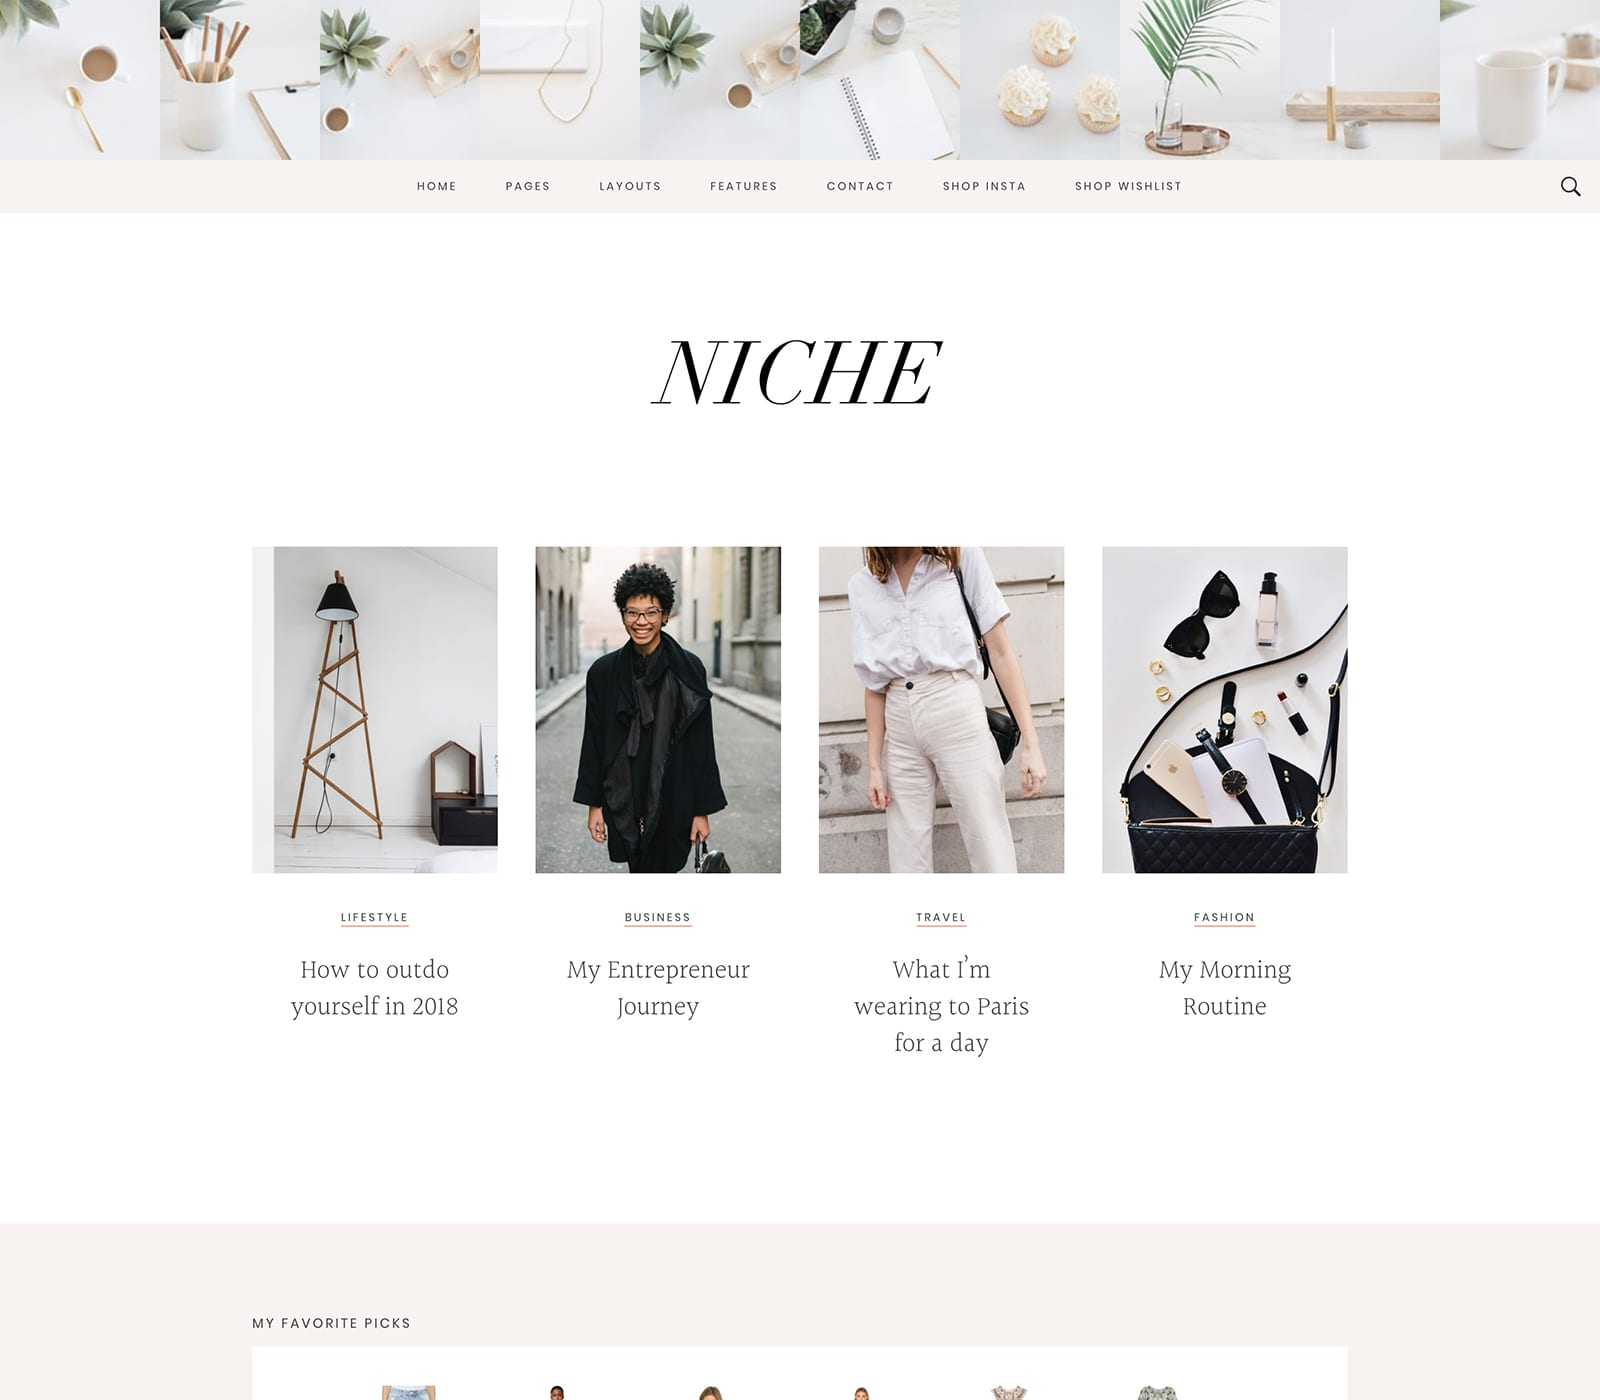 Niche Pro is a Studiopress theme for WordPress and shows is soft pinks, peach and White with fashion blocks